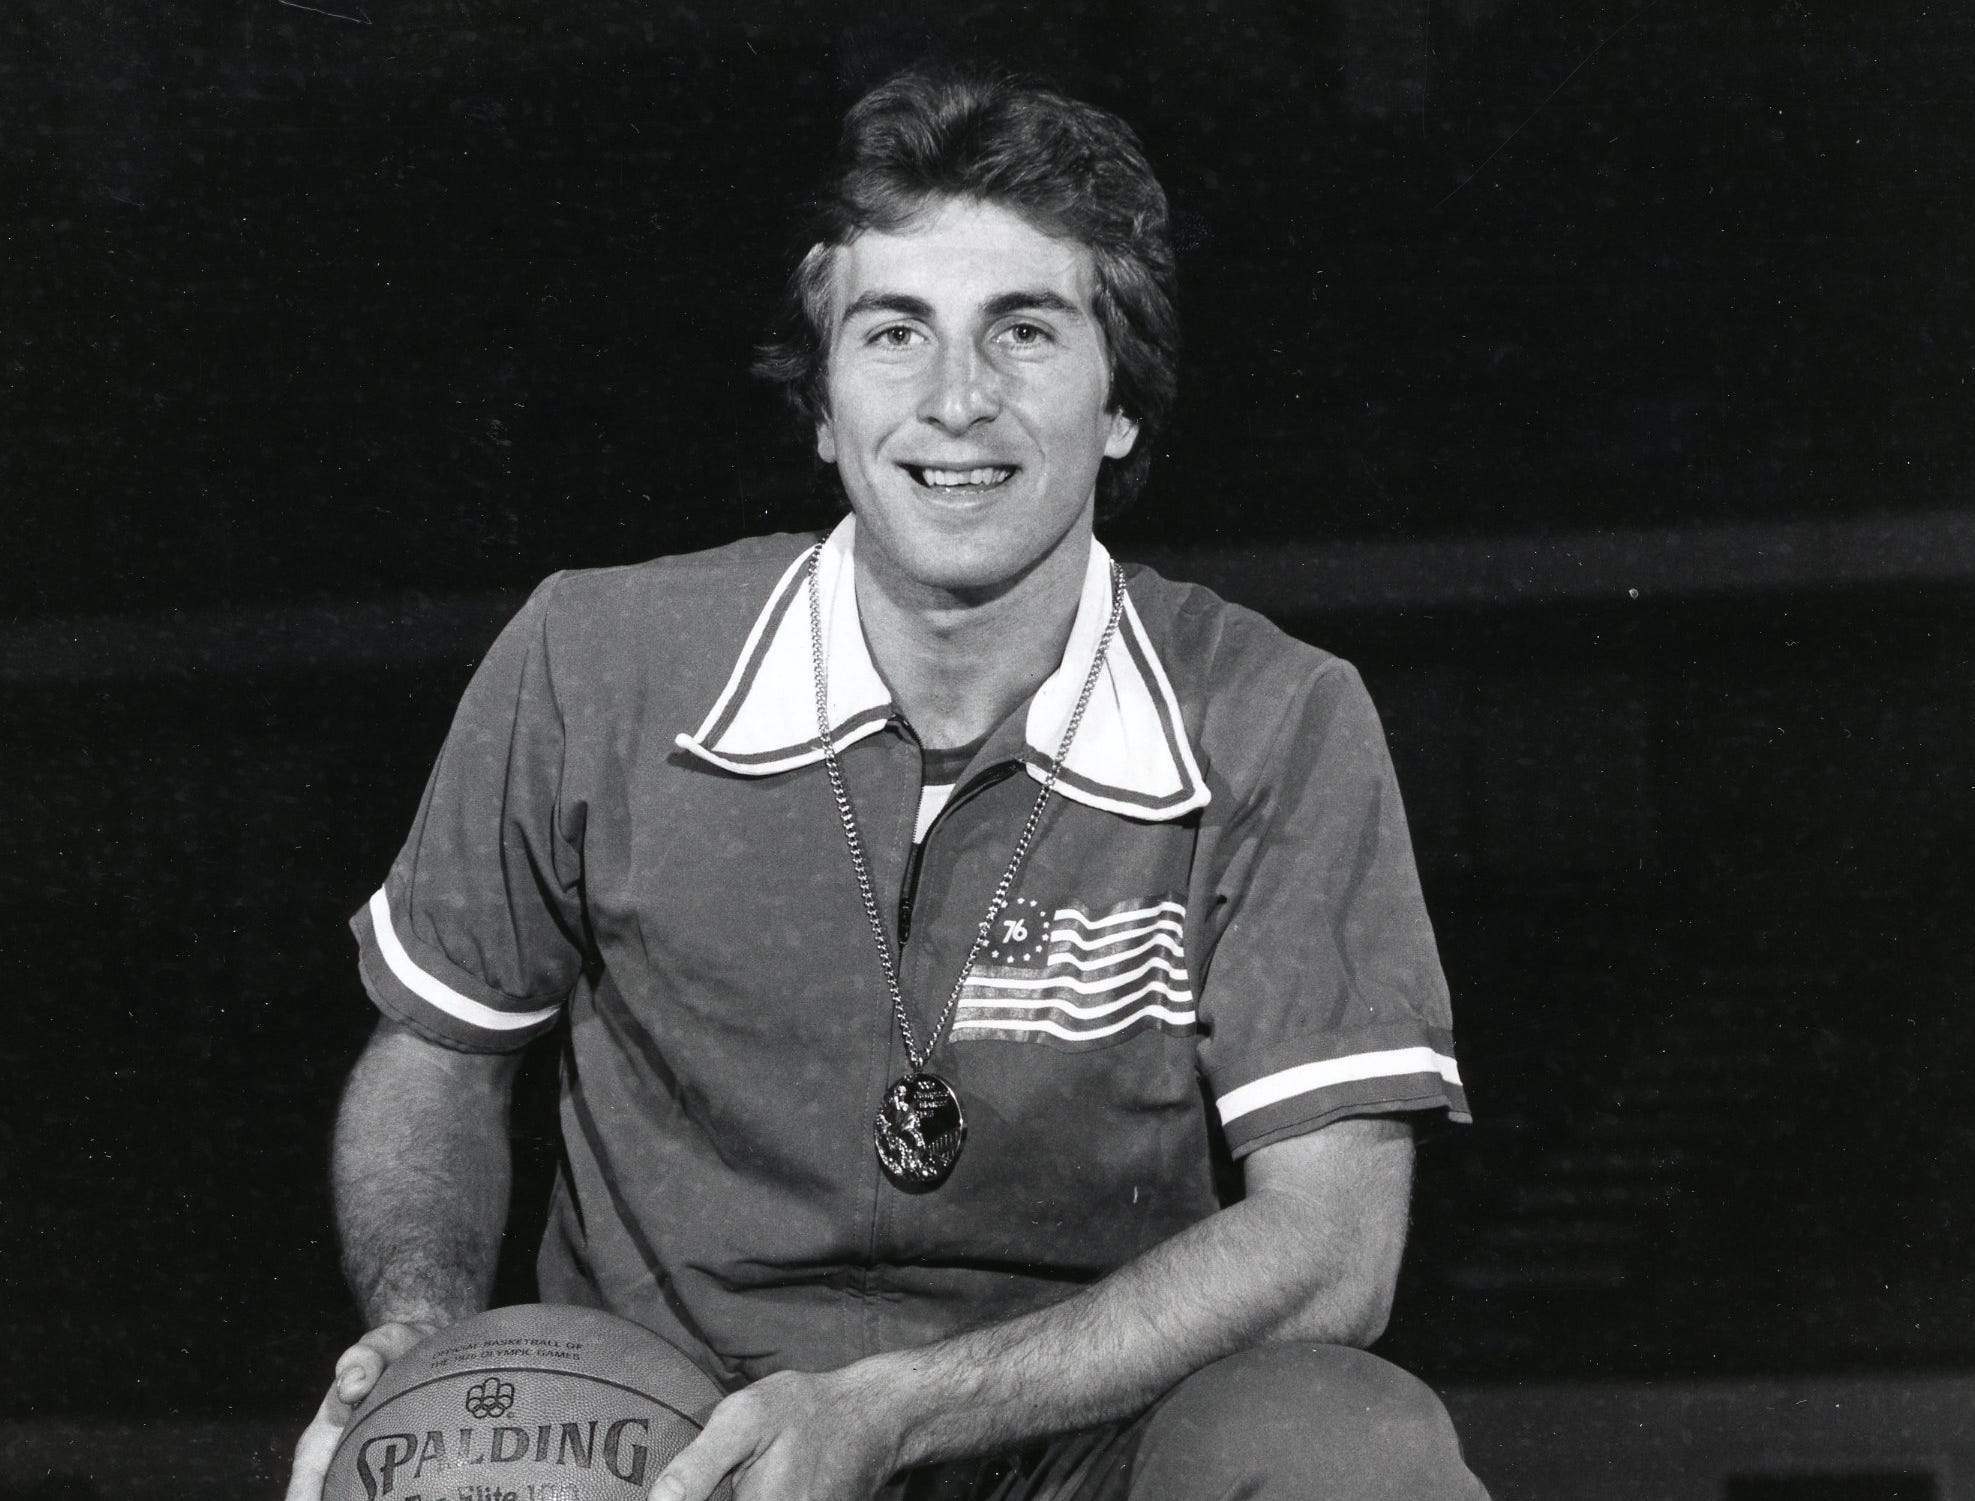 Ernie Grunfeld, with his Olympic gold medal from the 1976 USA basketball team, November, 1976.